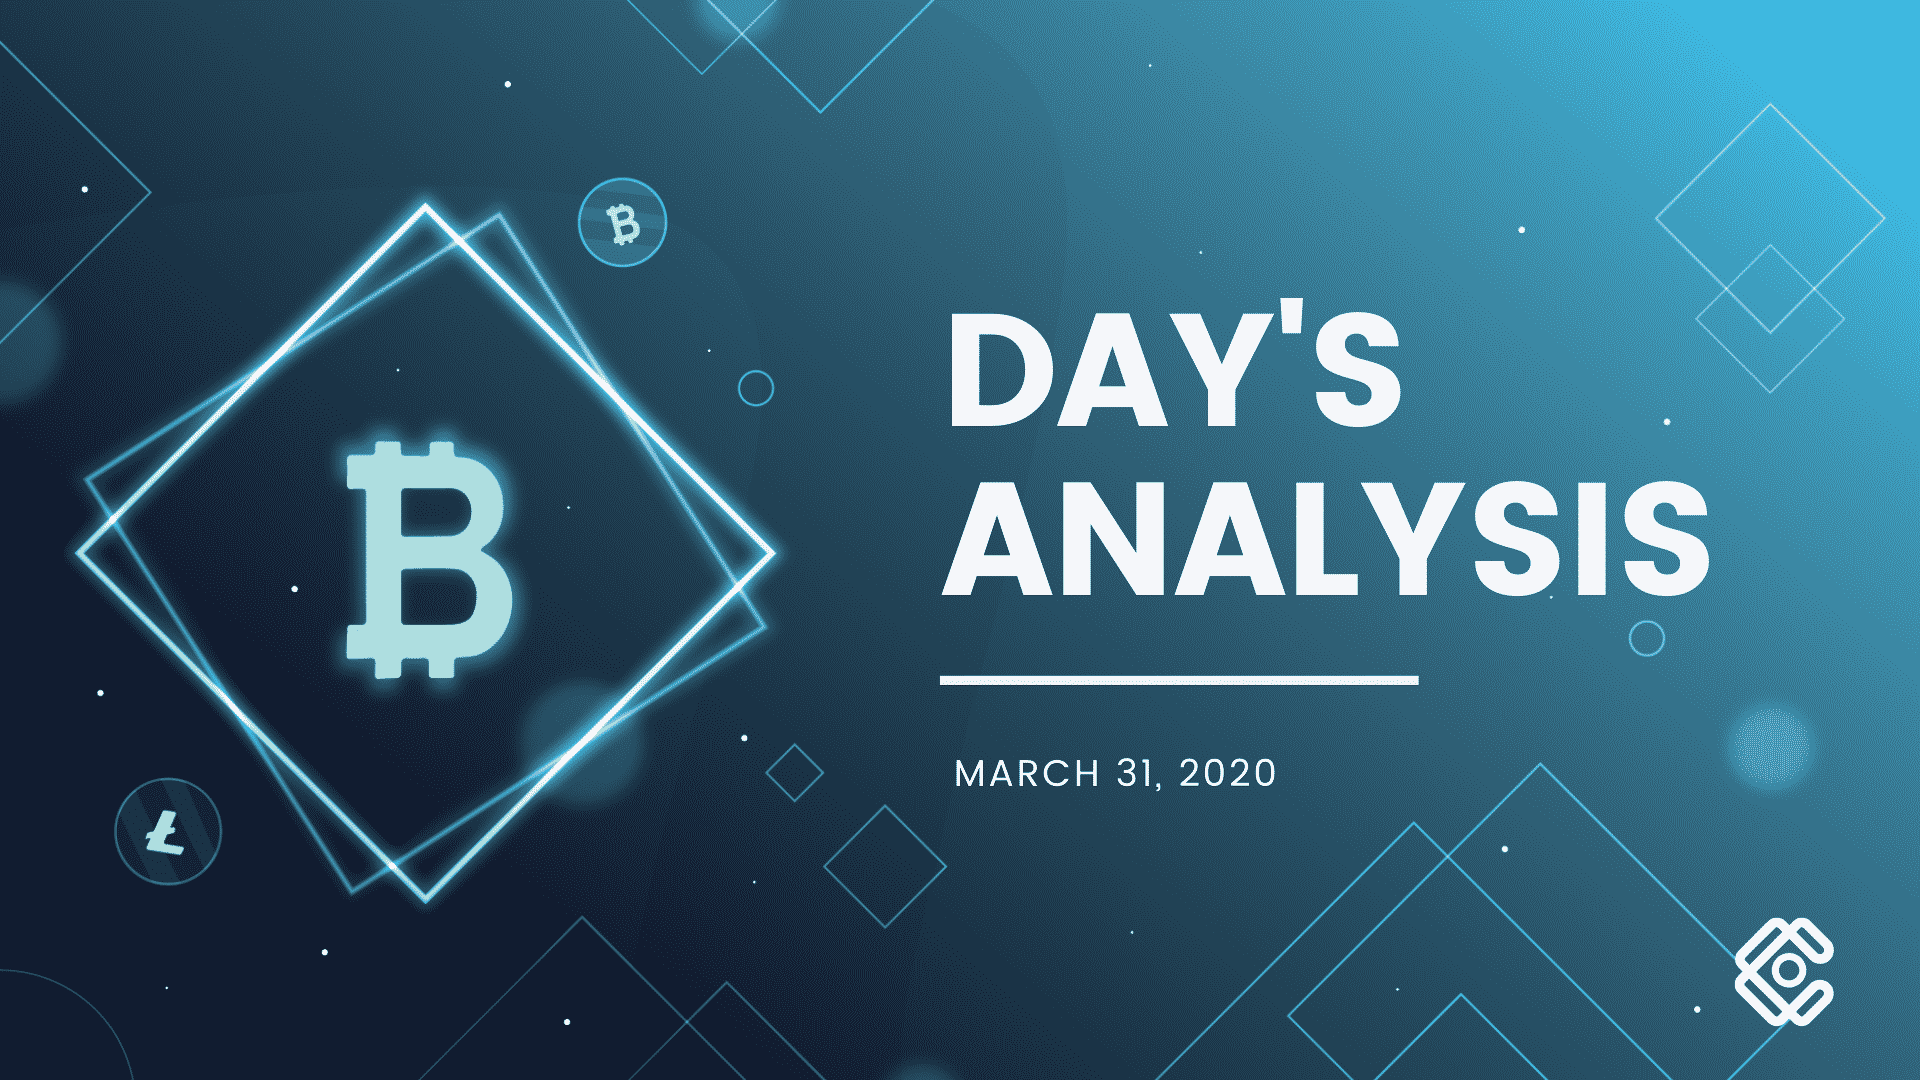 Market Analysis of March 31, 2020